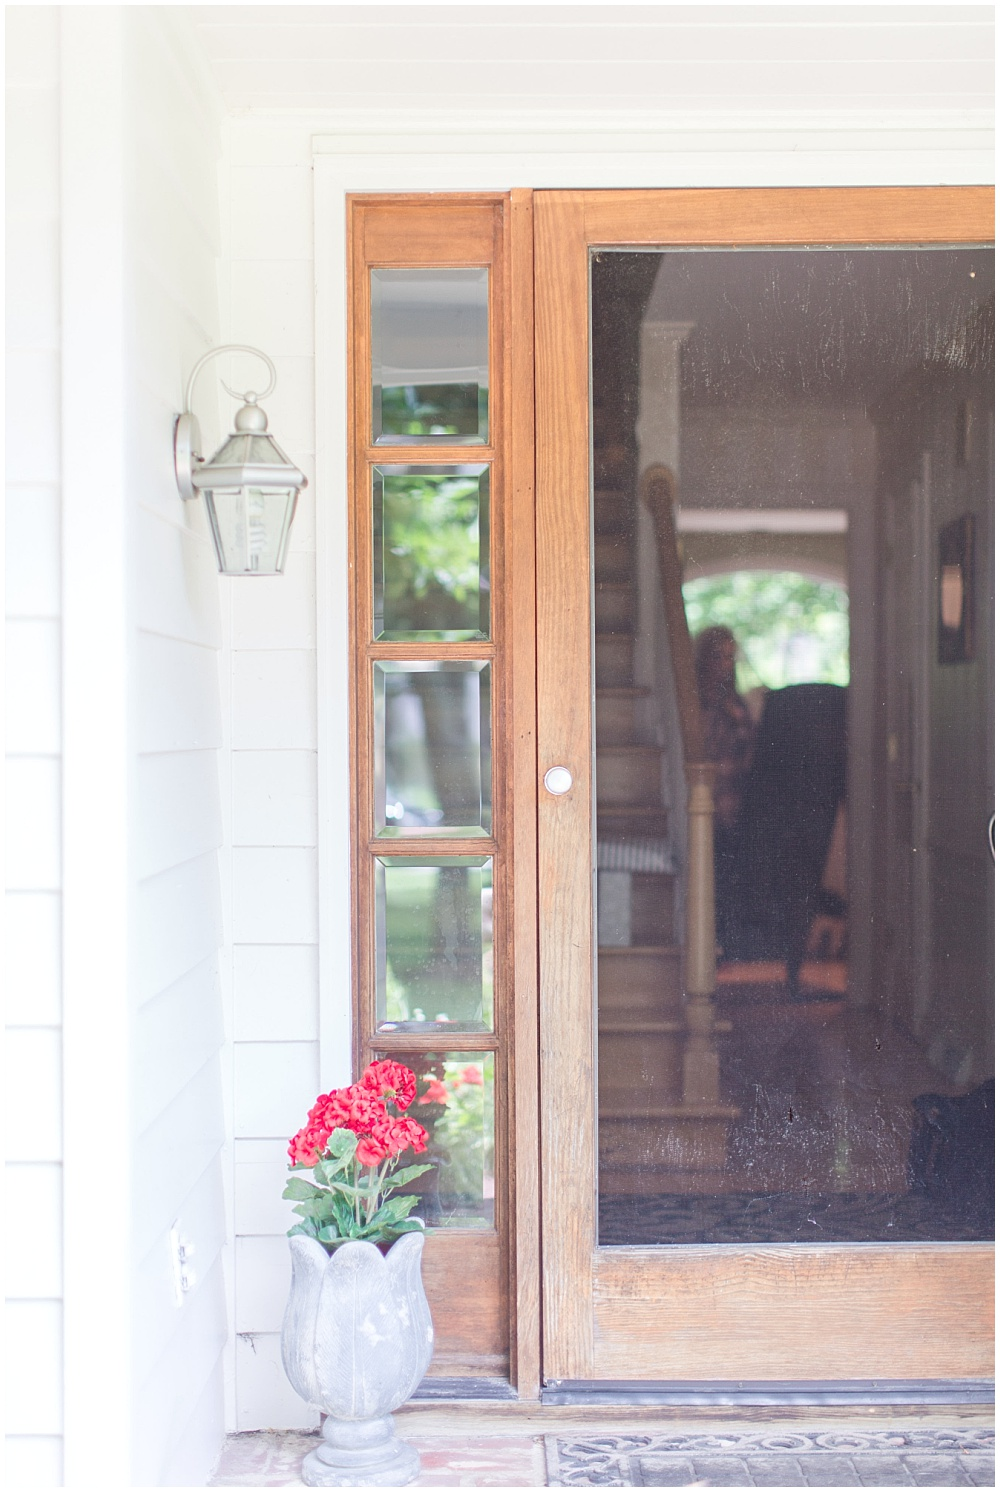 Rustic front porch with wooden screen door | Sami Renee Photography + Jessica Dum Wedding Coordination